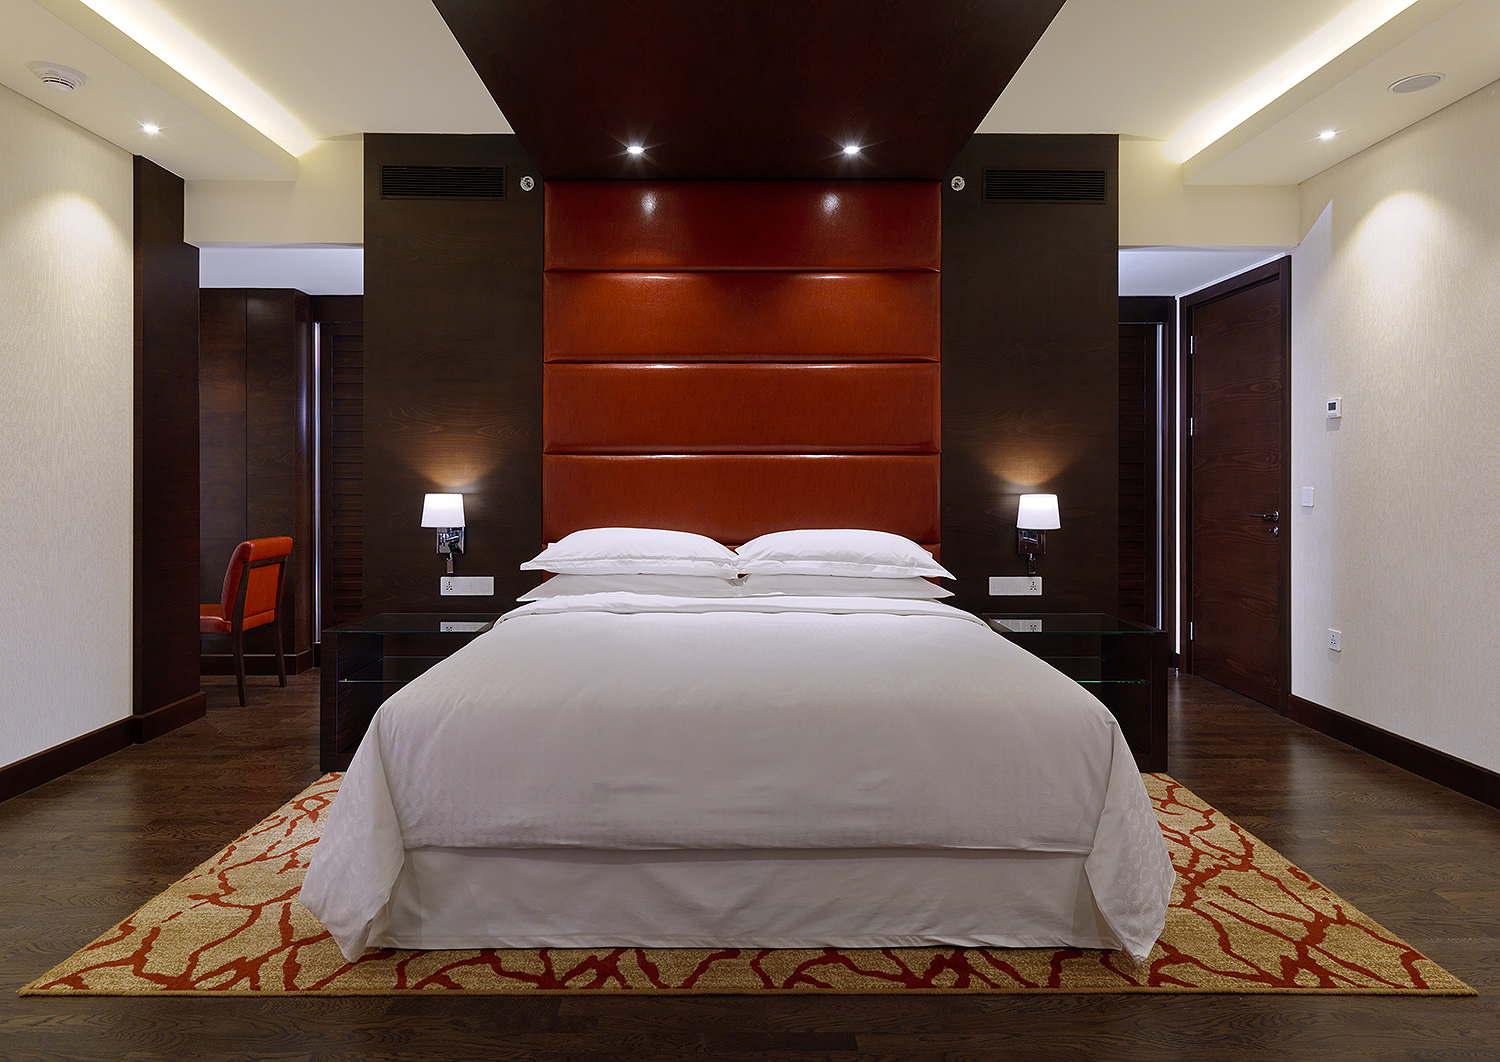 cobico_sher_conakry_residential_suite_bed_prev.jpg